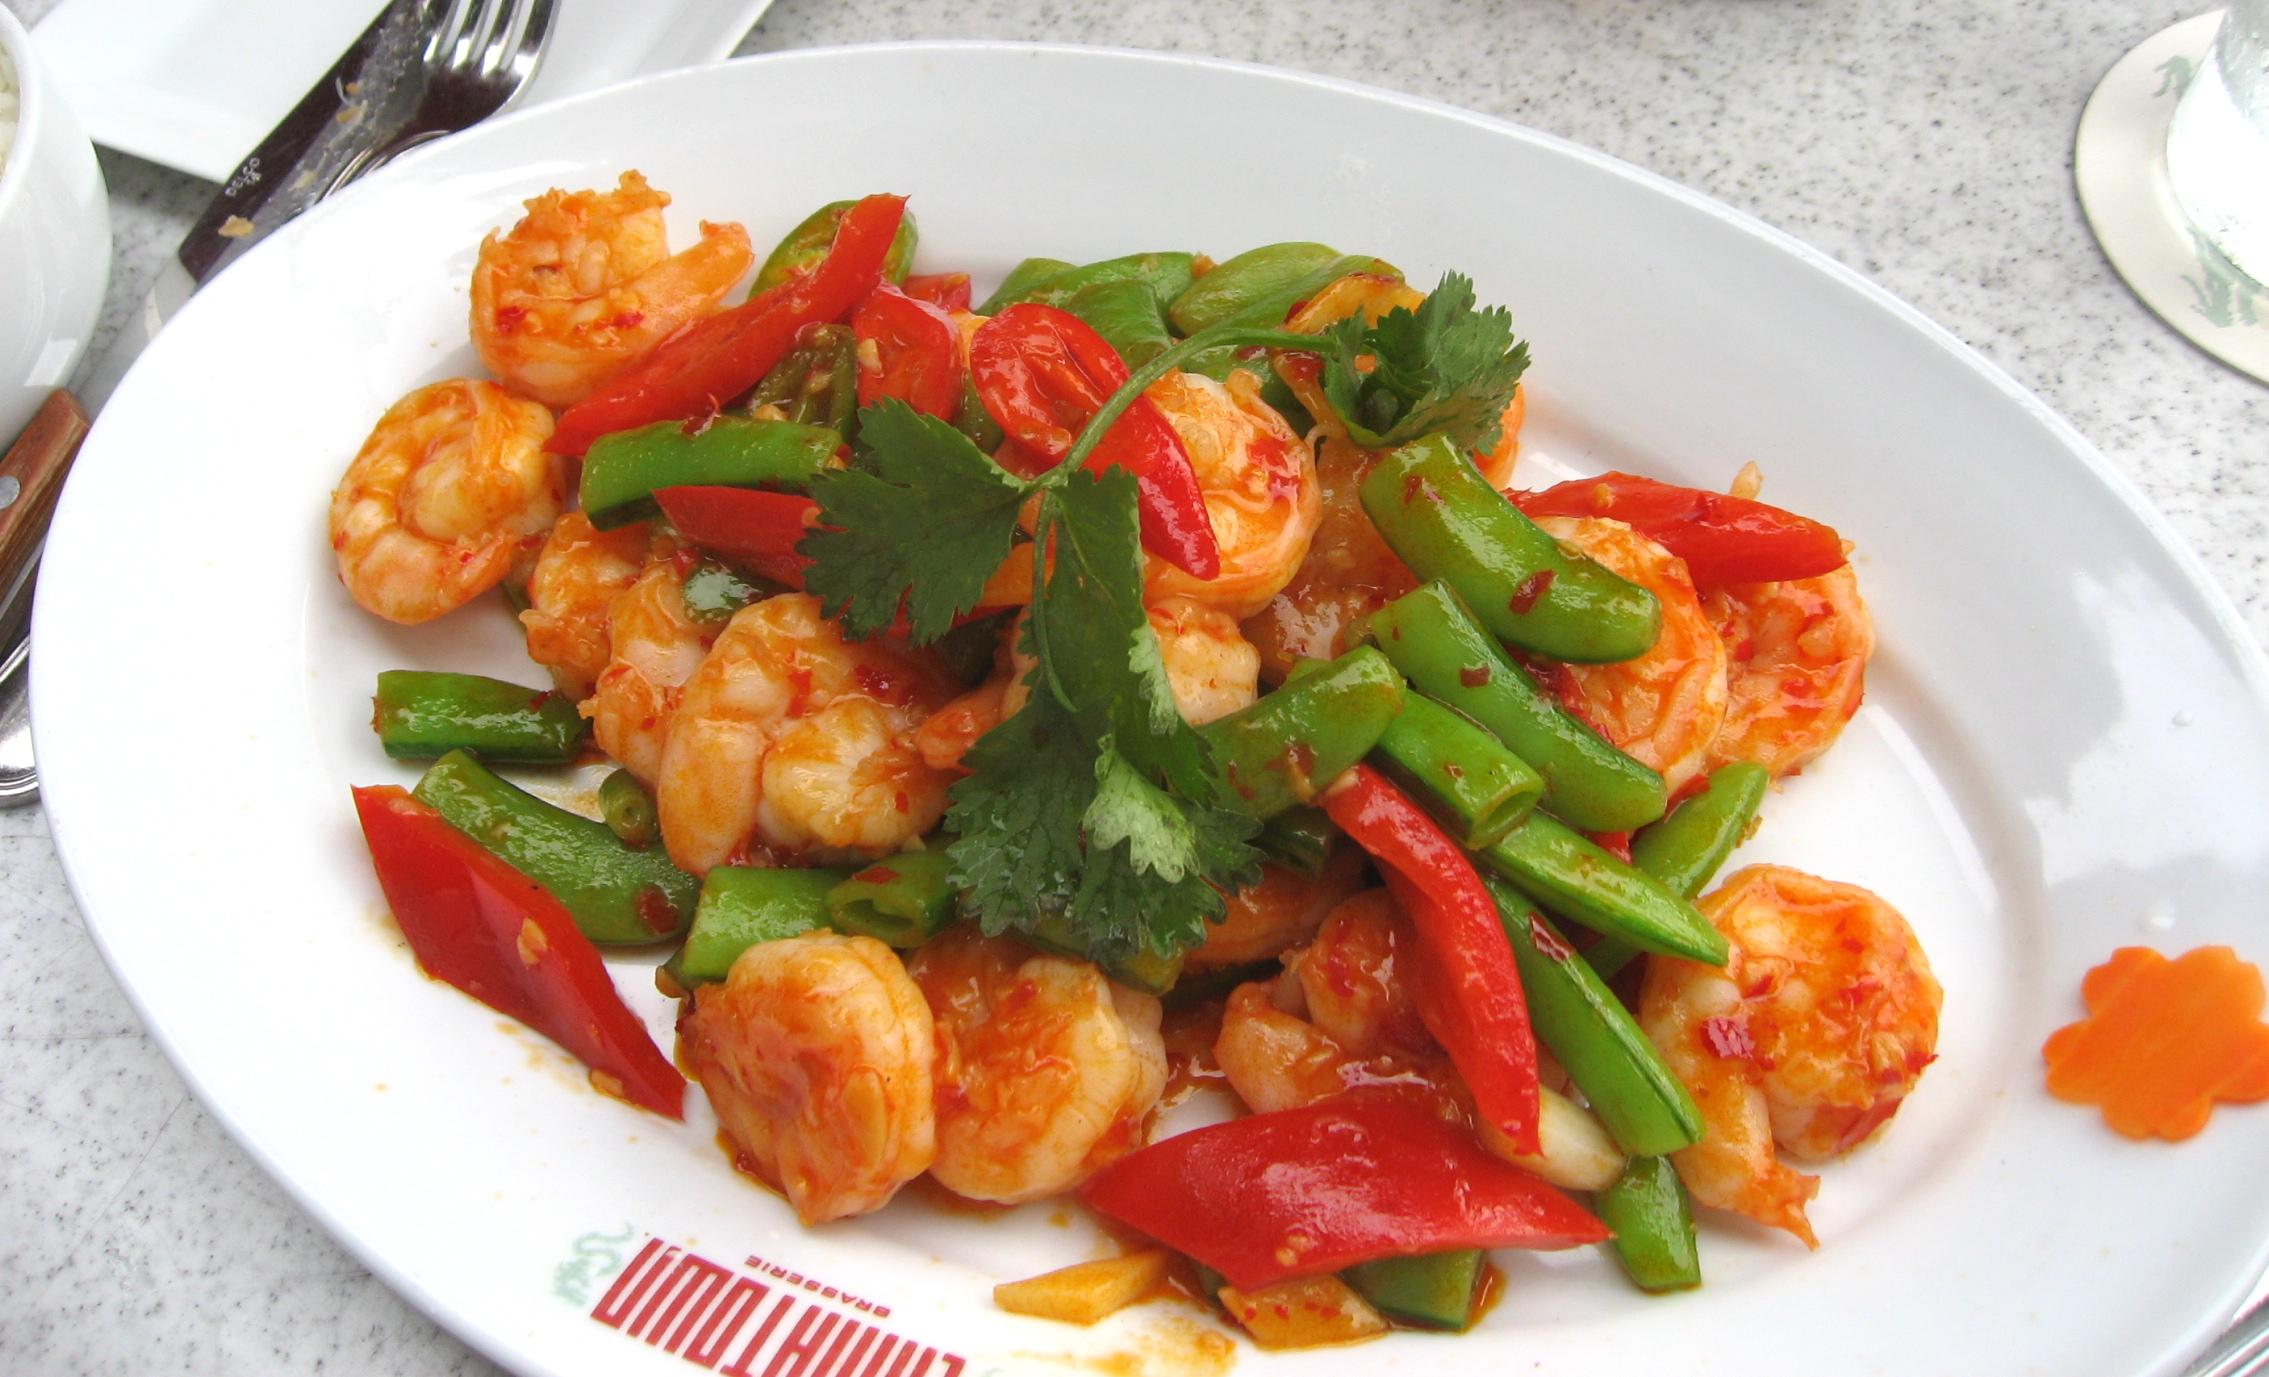 ... Kung Pao Shrimp. He said it was quite spicy and the shrimp looked good